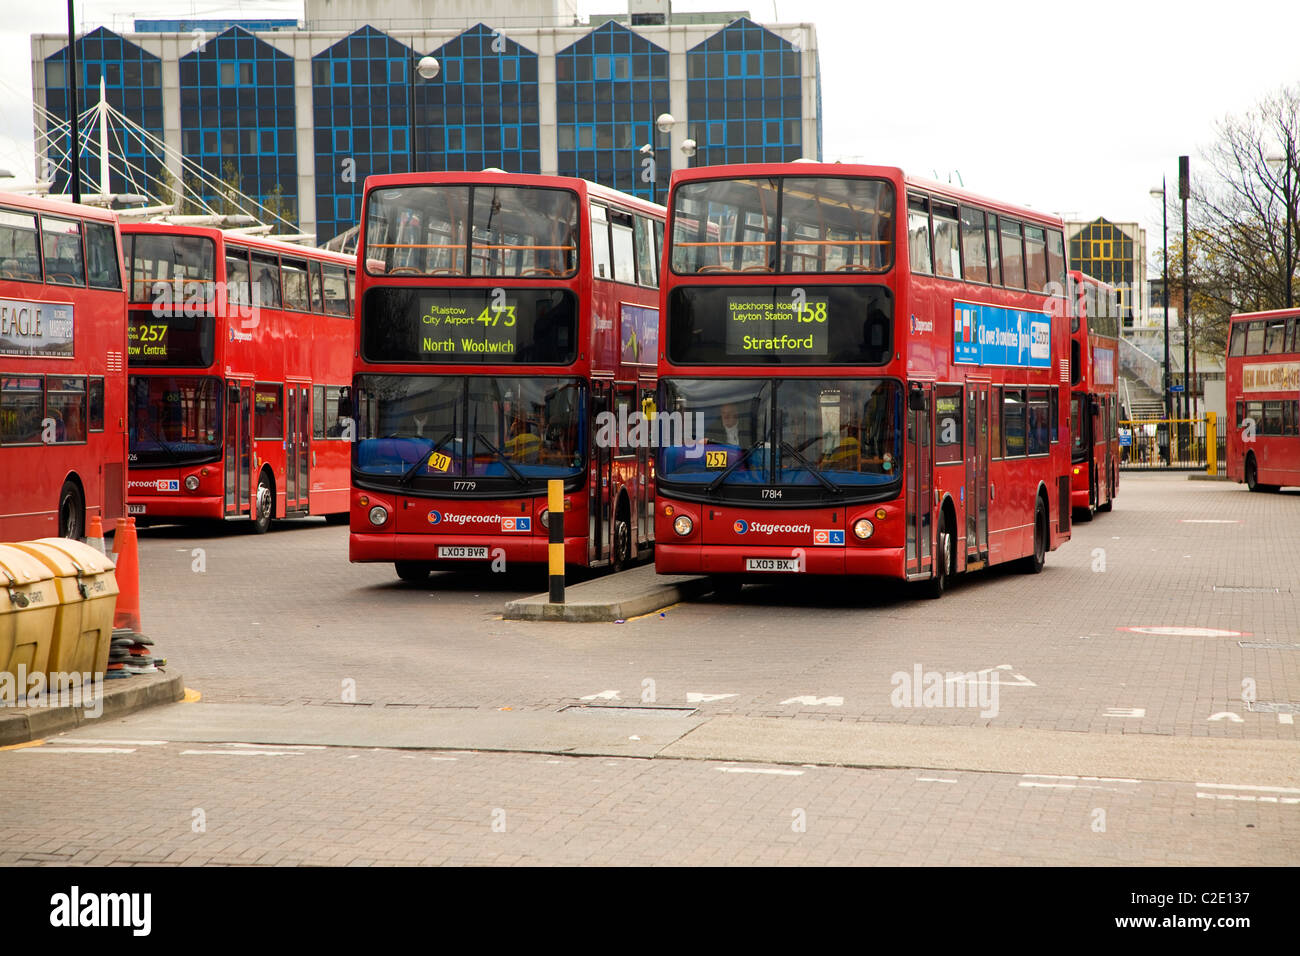 Red double decker buses terminus bus station Newham London - Stock Image